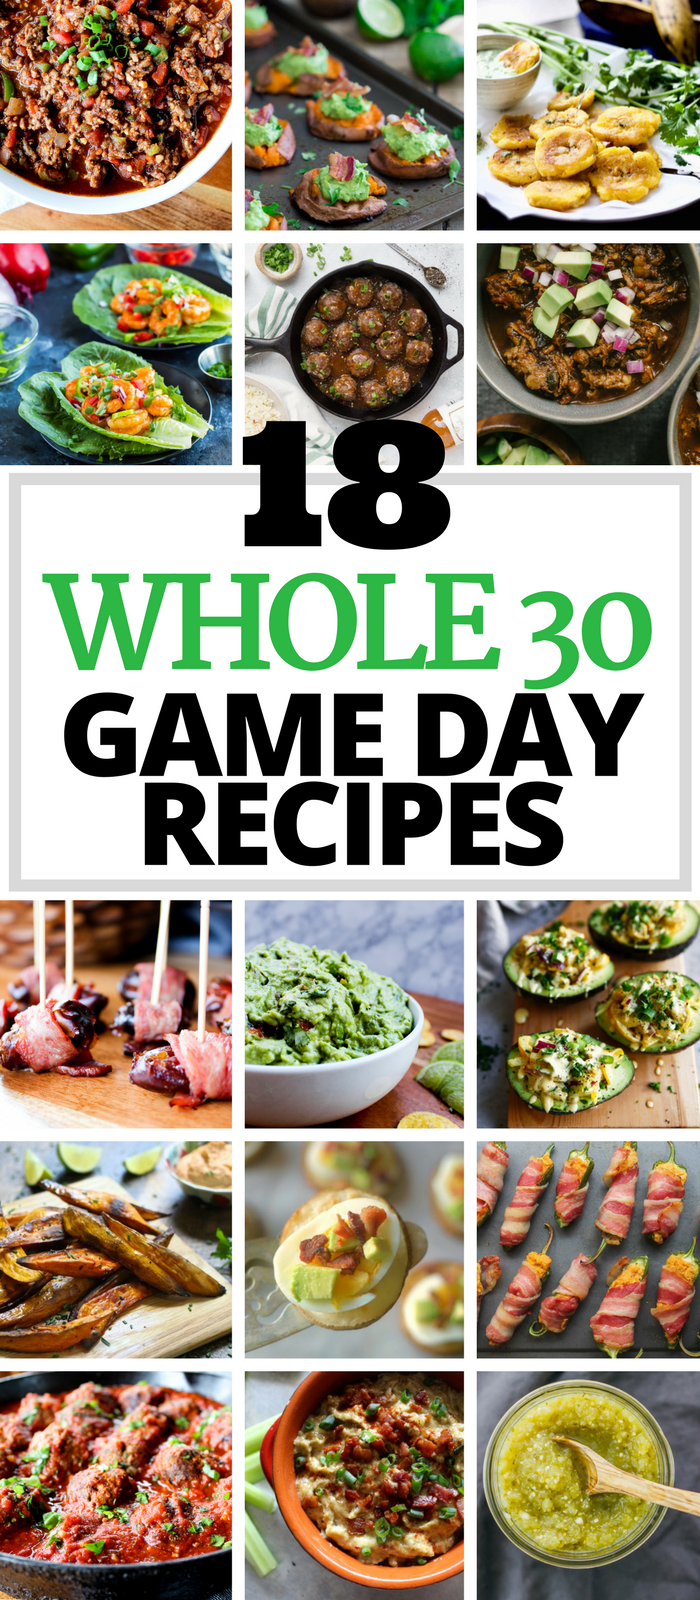 18 Whole30 Game Day Recipes via The Whole Cook